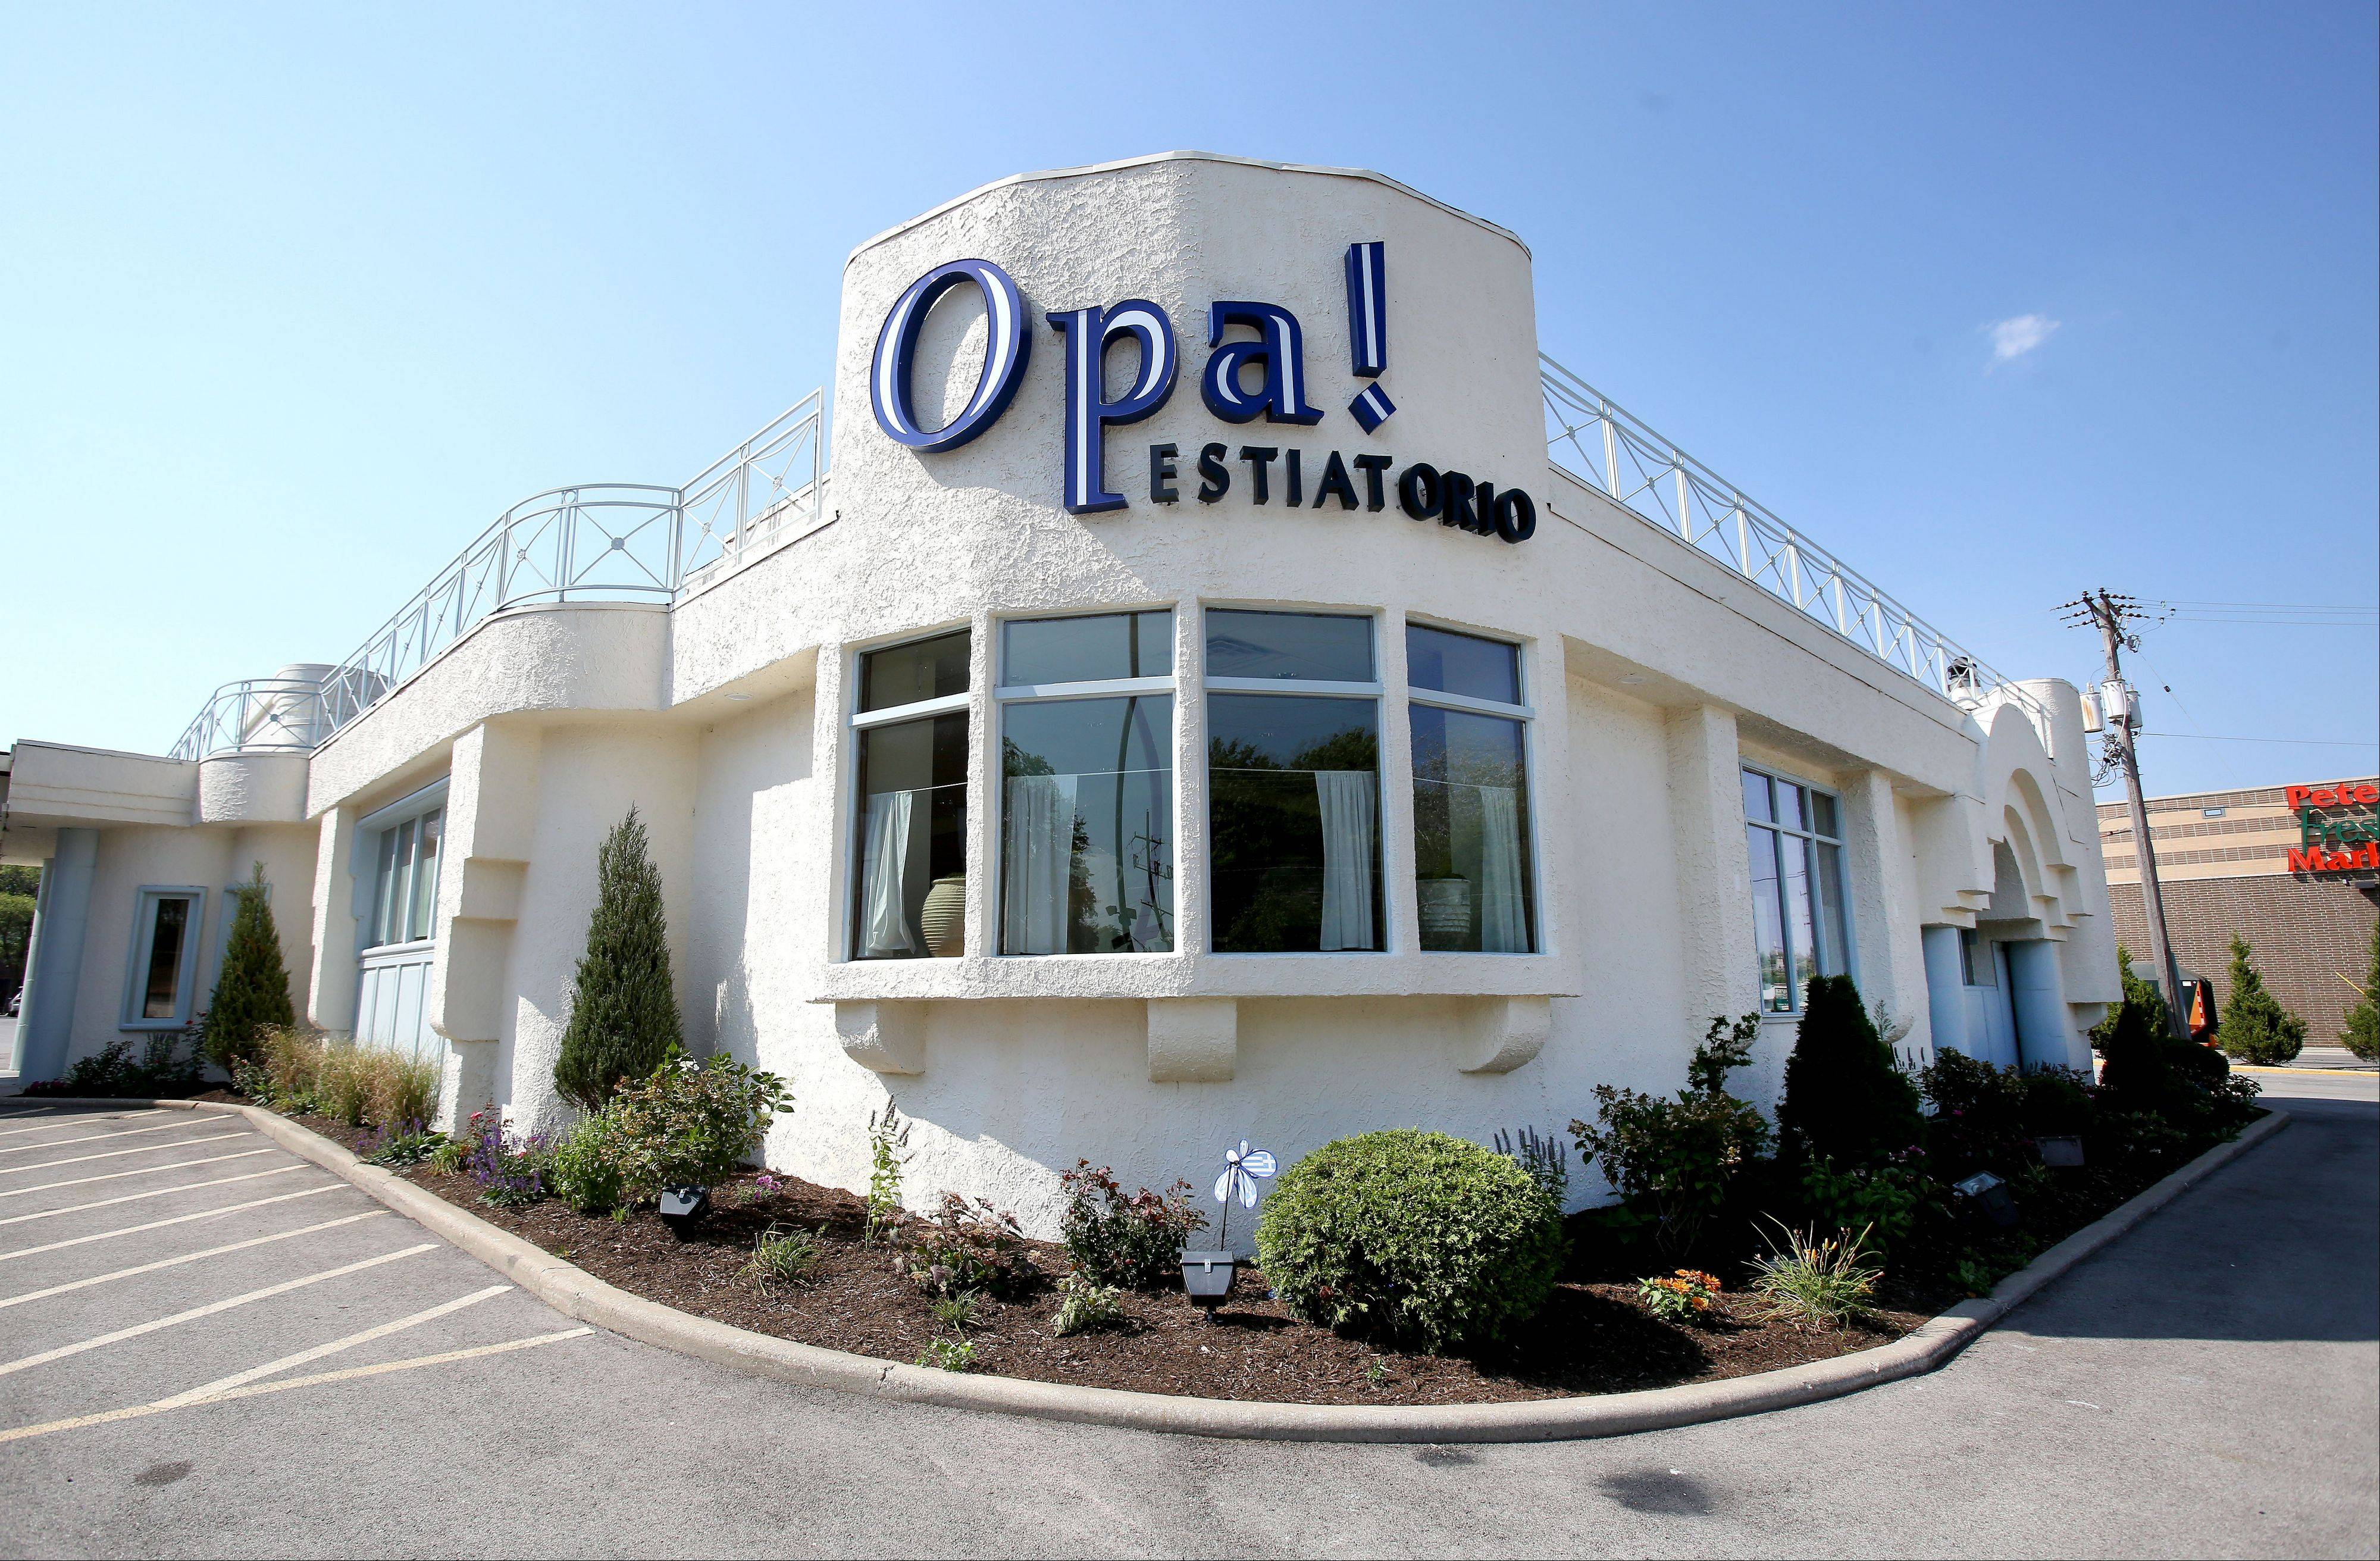 Opa! Estiatorio moved in to the former Costa's site in Oakbrook Terrace.